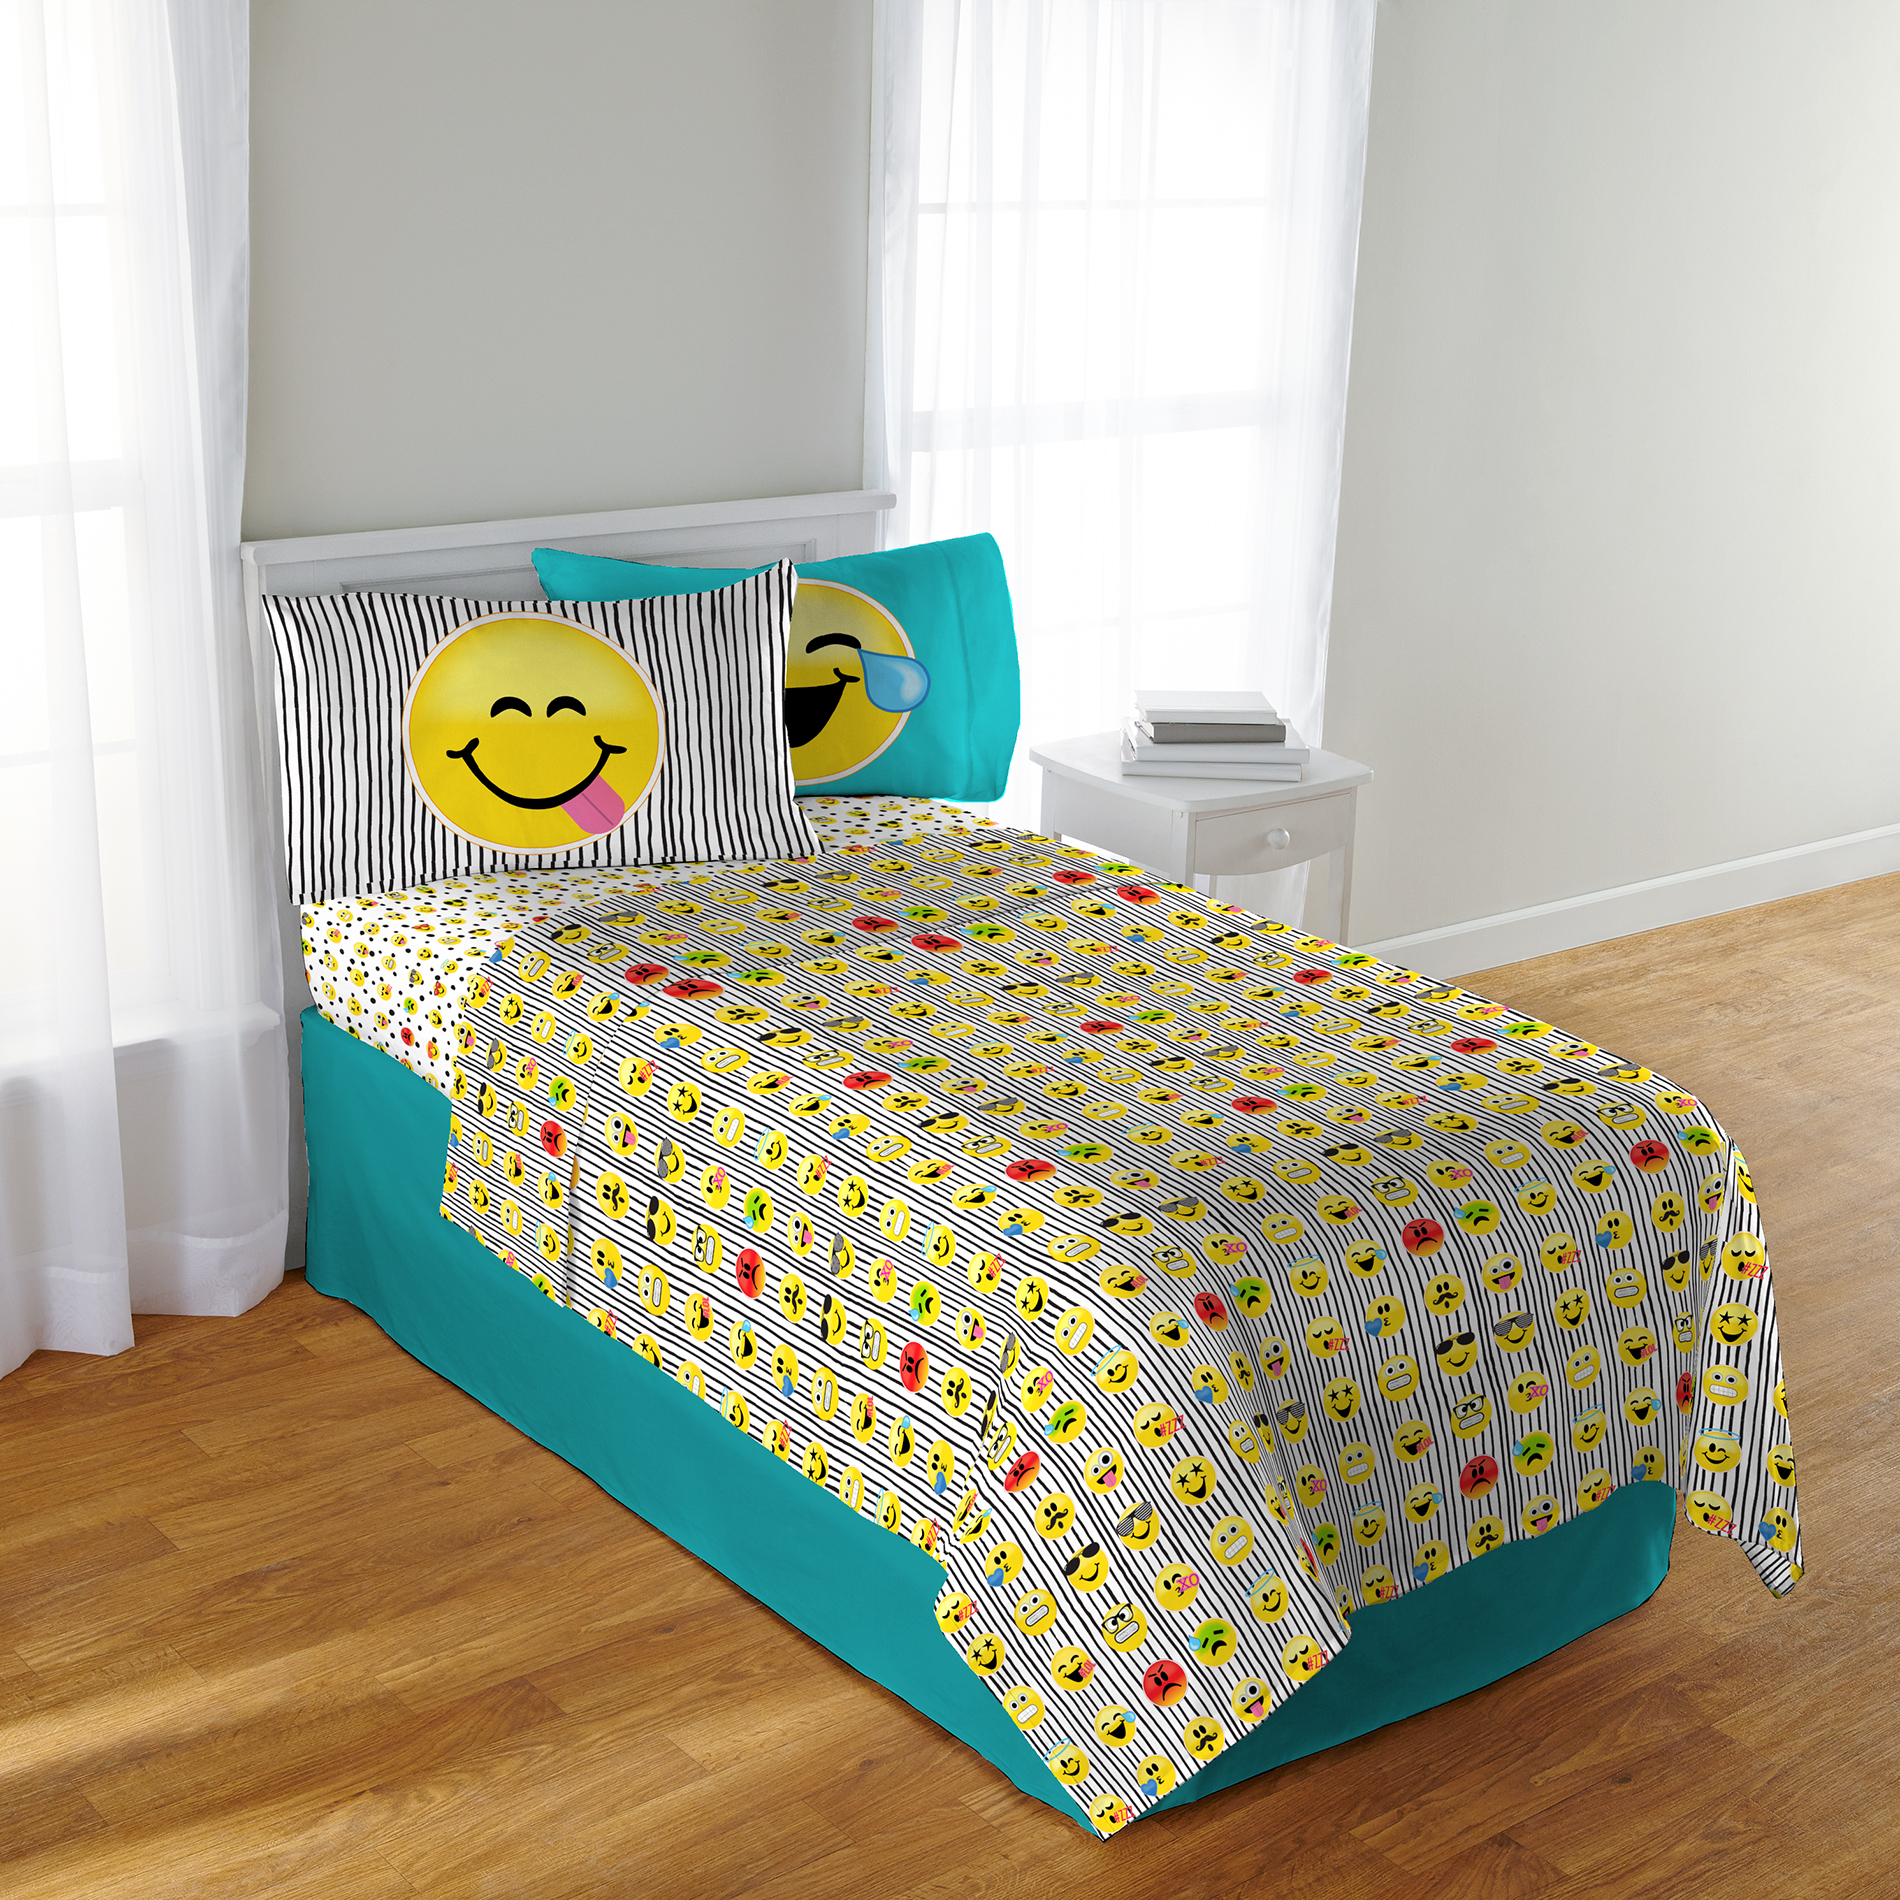 Emoji Pillowcase Multi Bed Spread Bed Sheets Kids